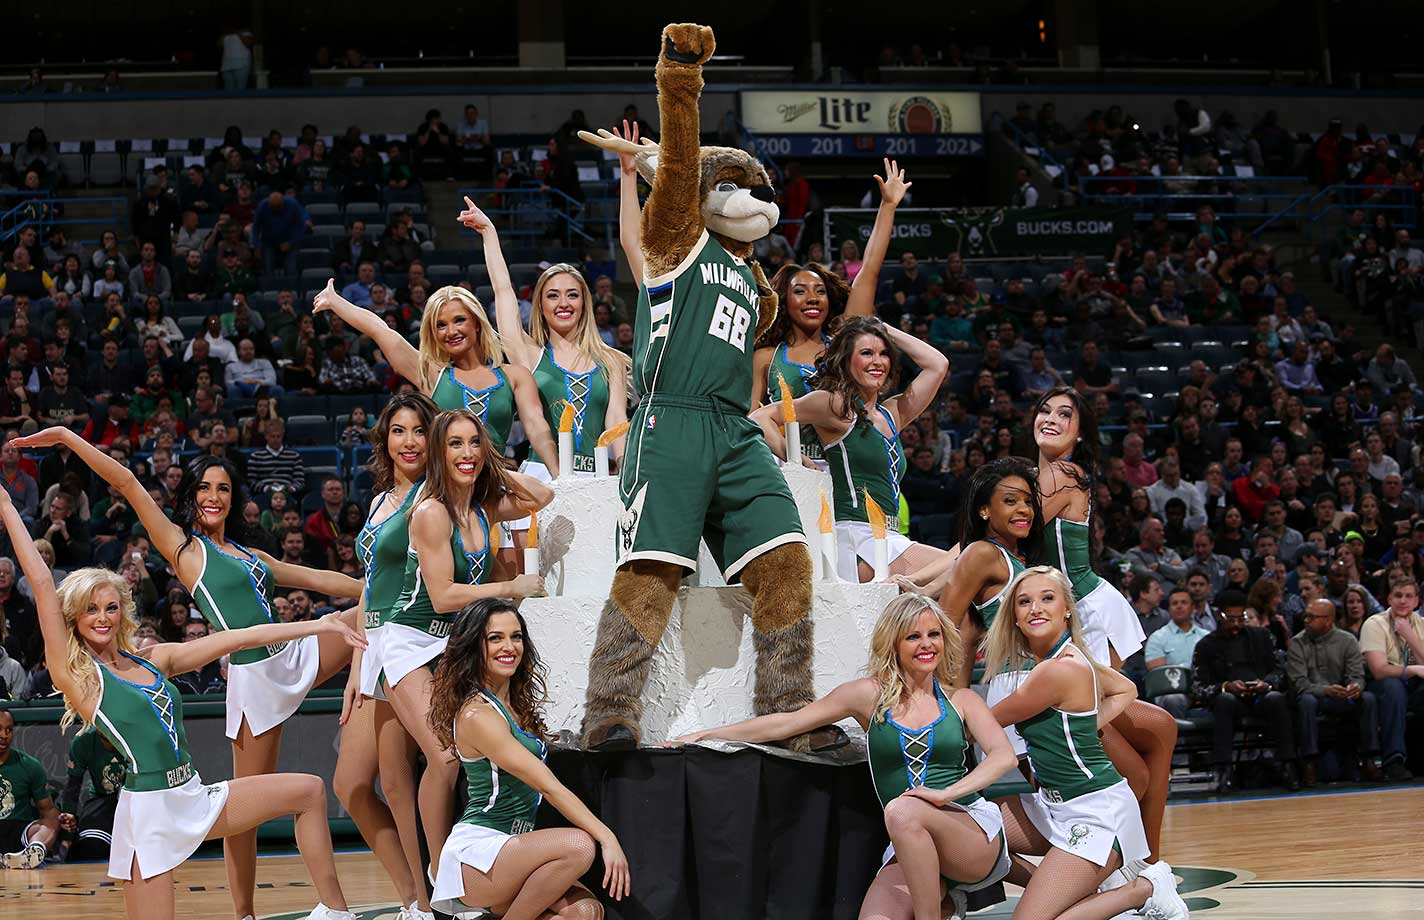 Dancers perform during the game between the Miami Heat and Milwaukee Bucks at the BMO Harris Bradley Center in Wisconsin.